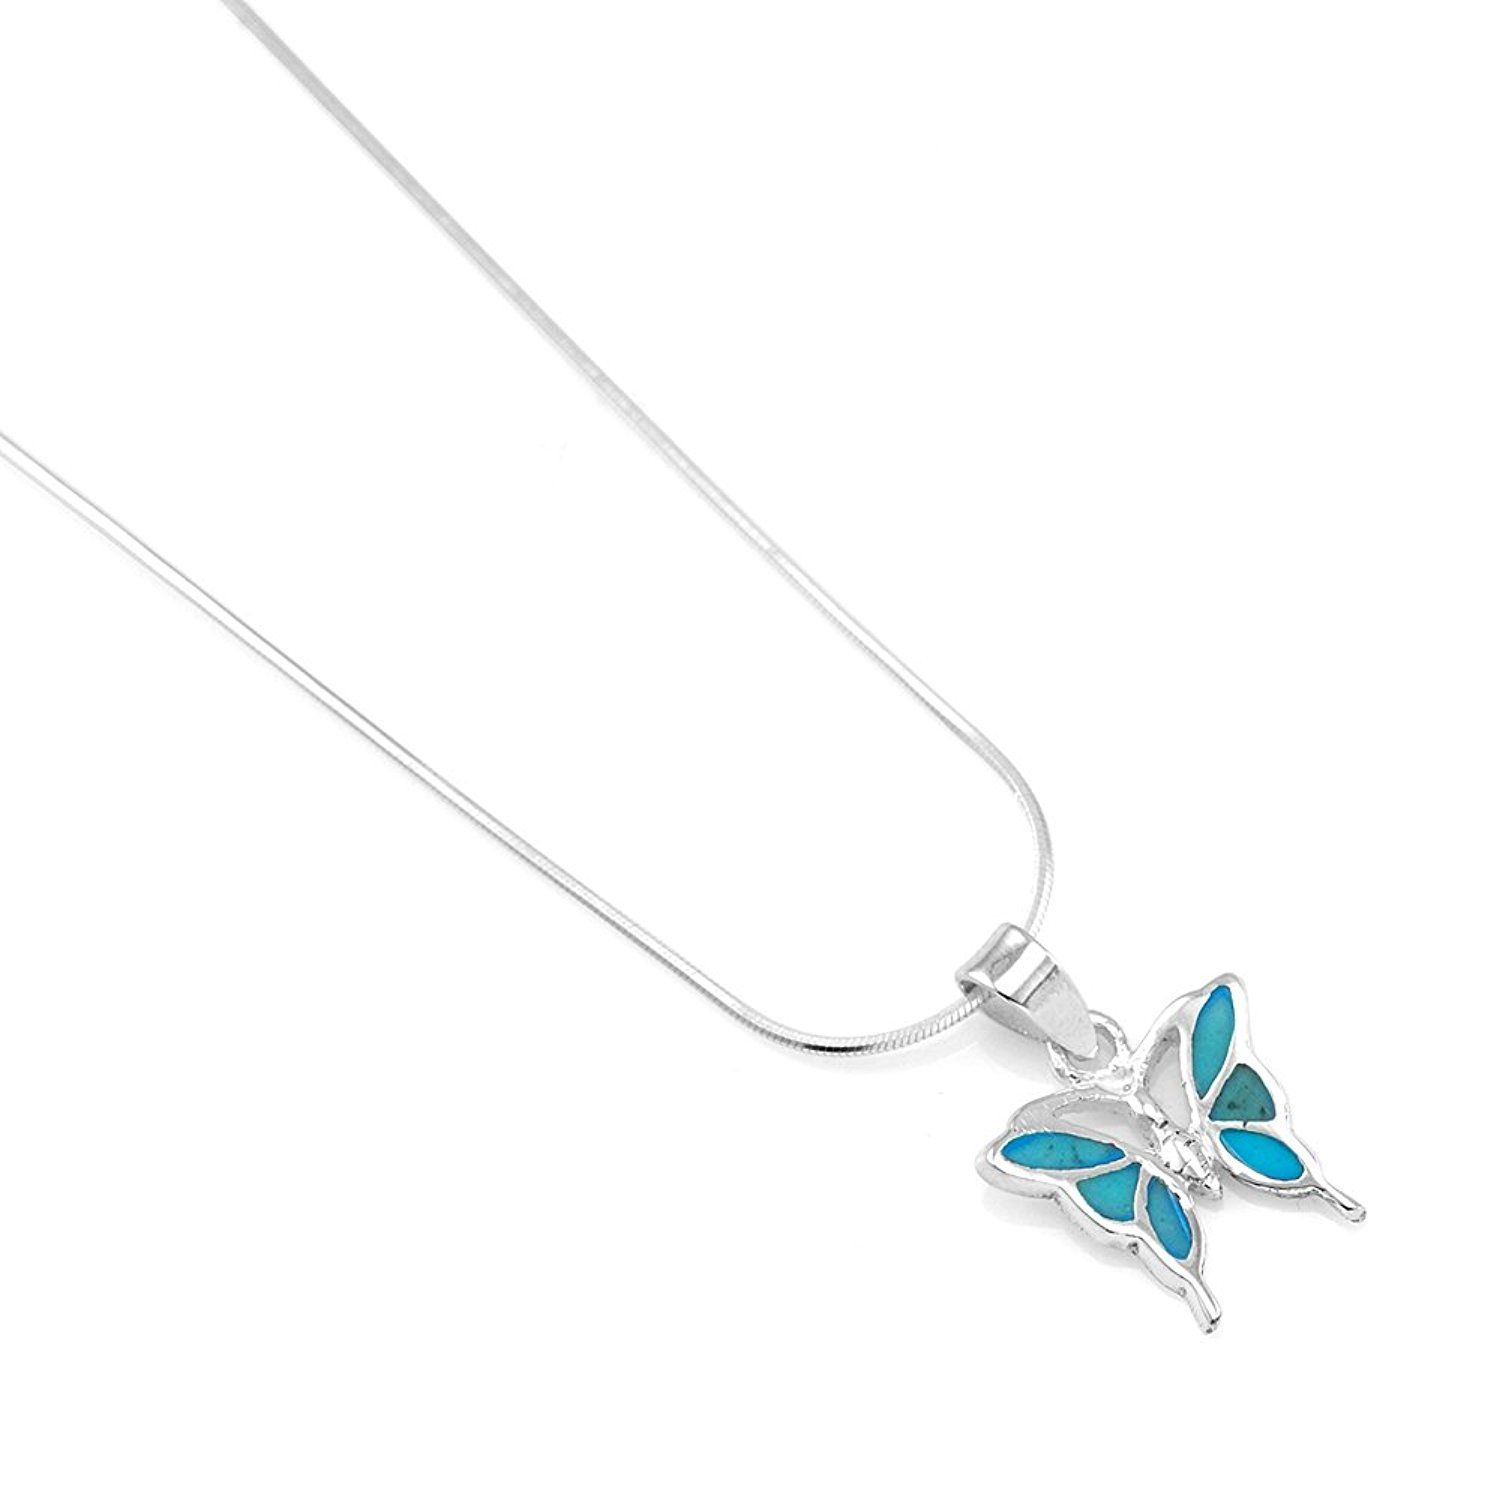 925 Sterling Silver With Turquoise Inlay Small Butterfly Charm